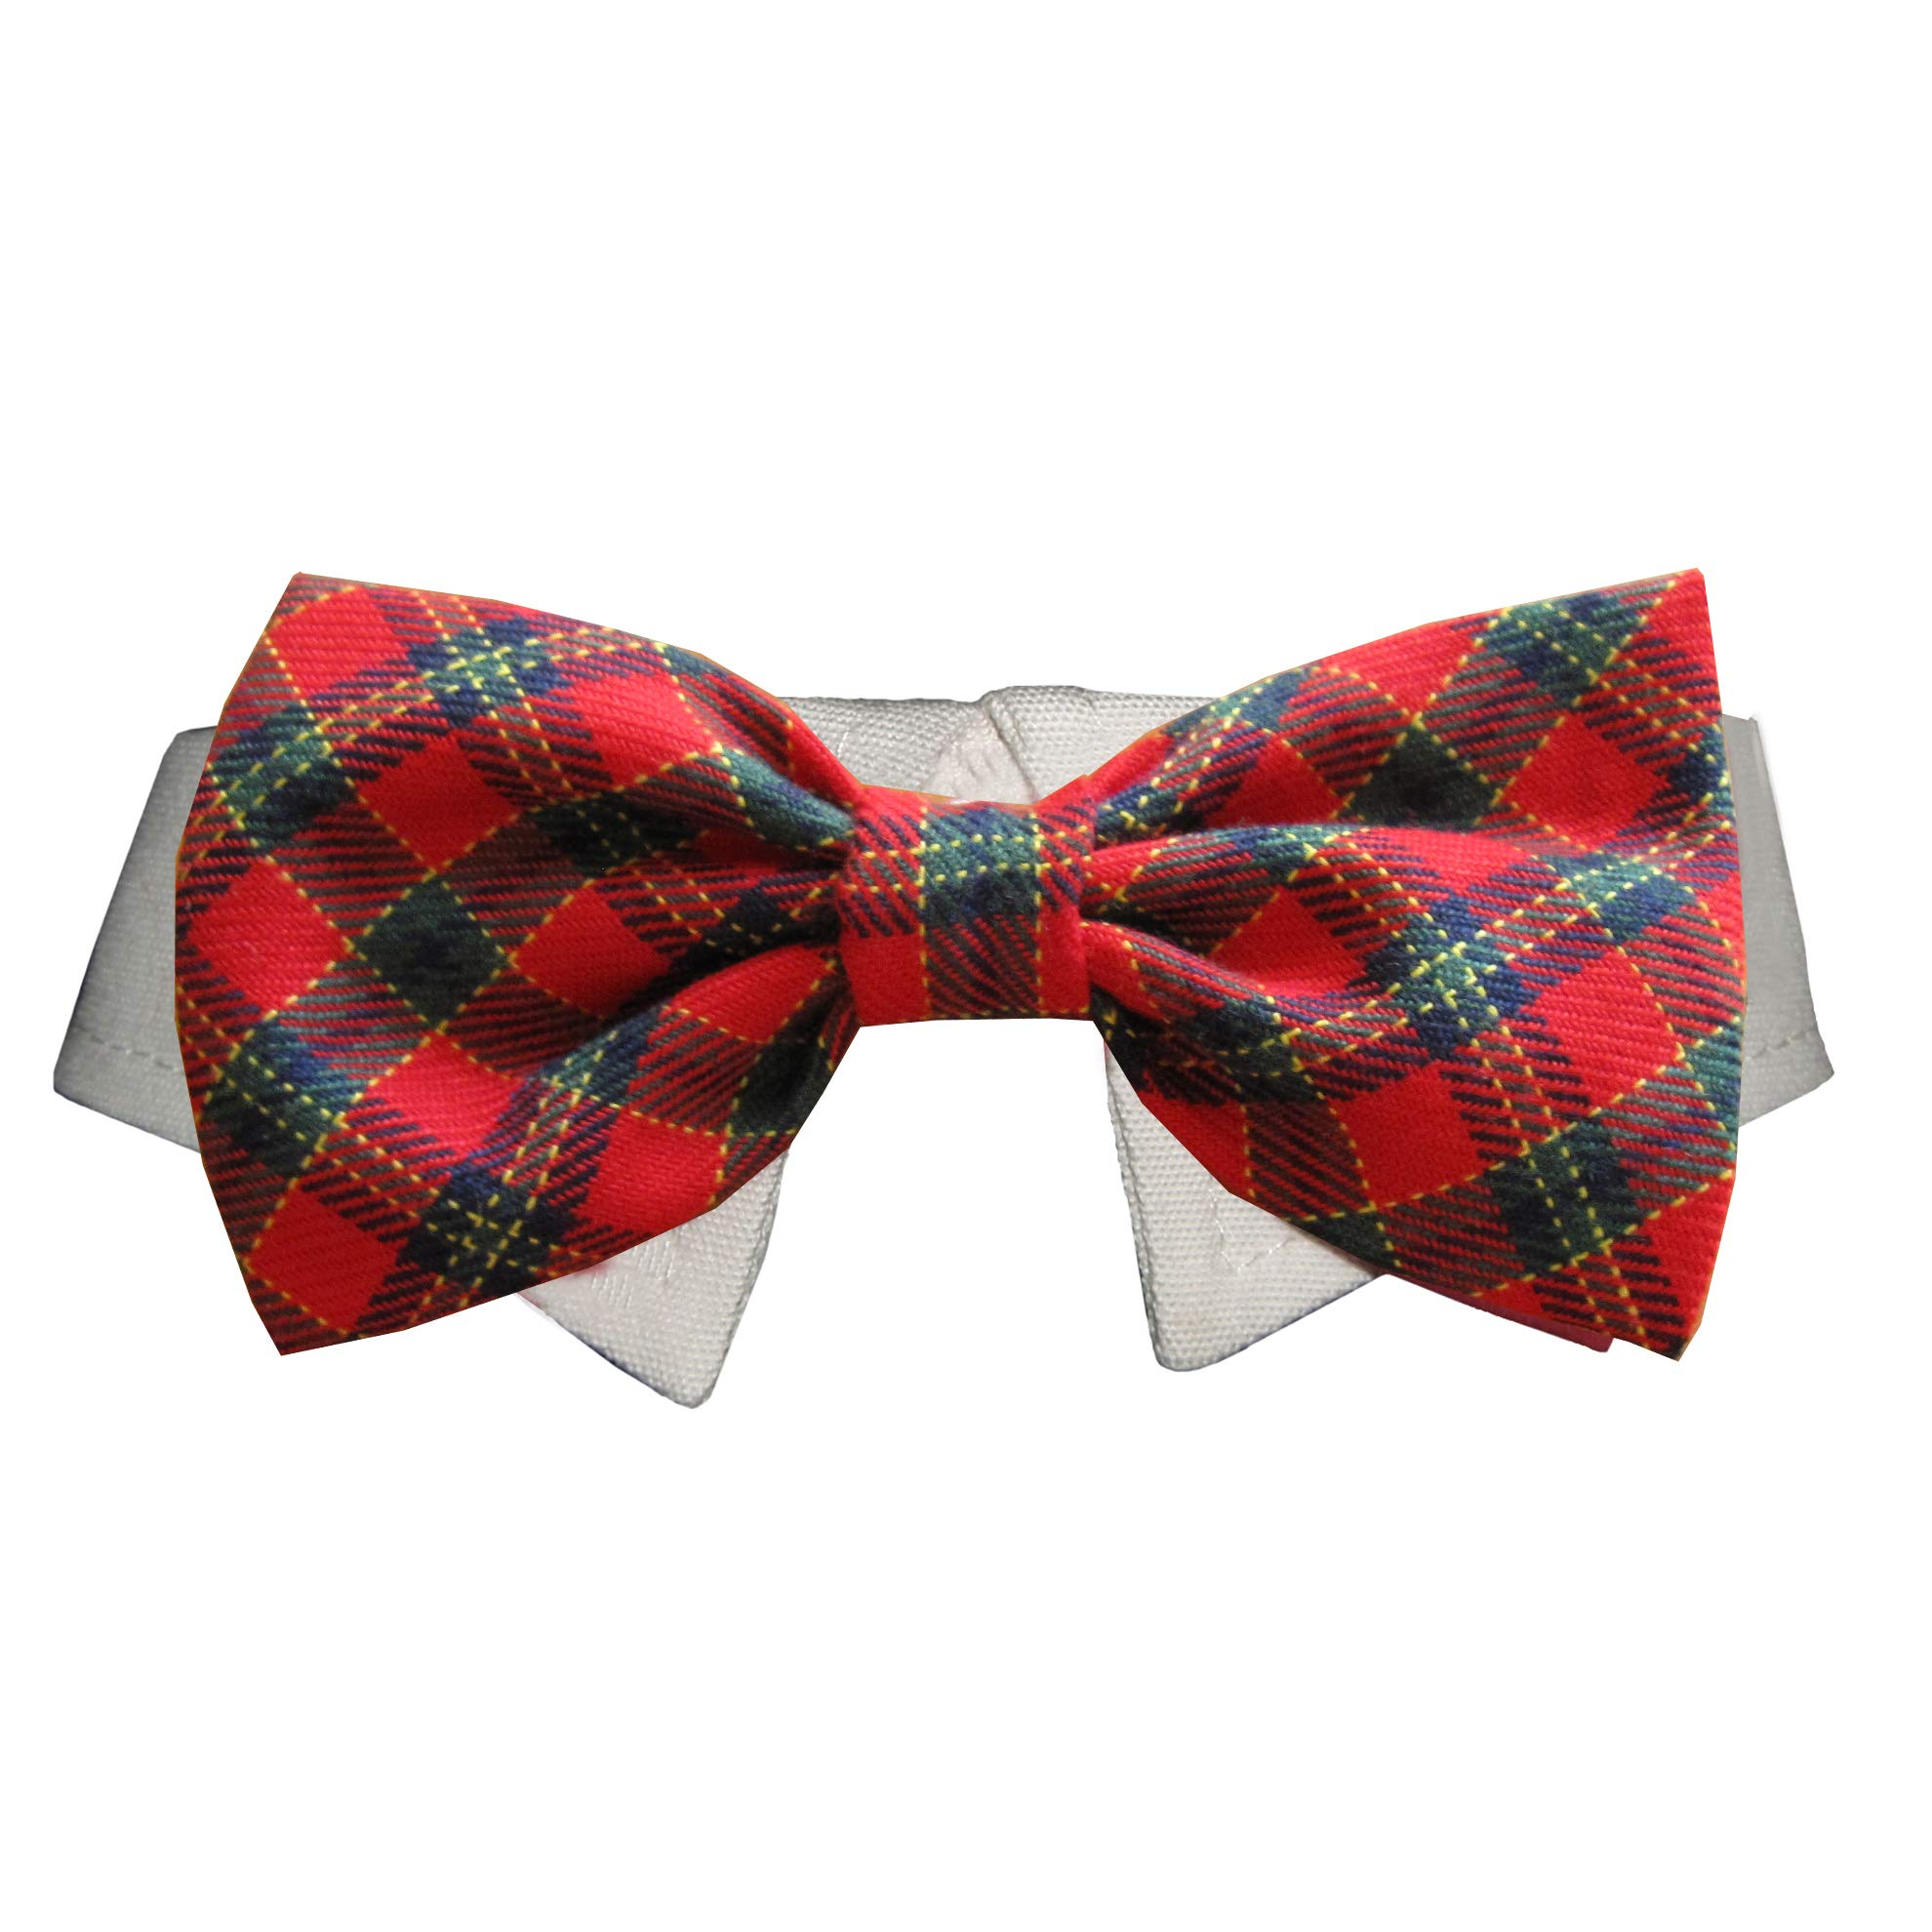 X'mas Dog Bow Tie -XL by Pooch Outfitters